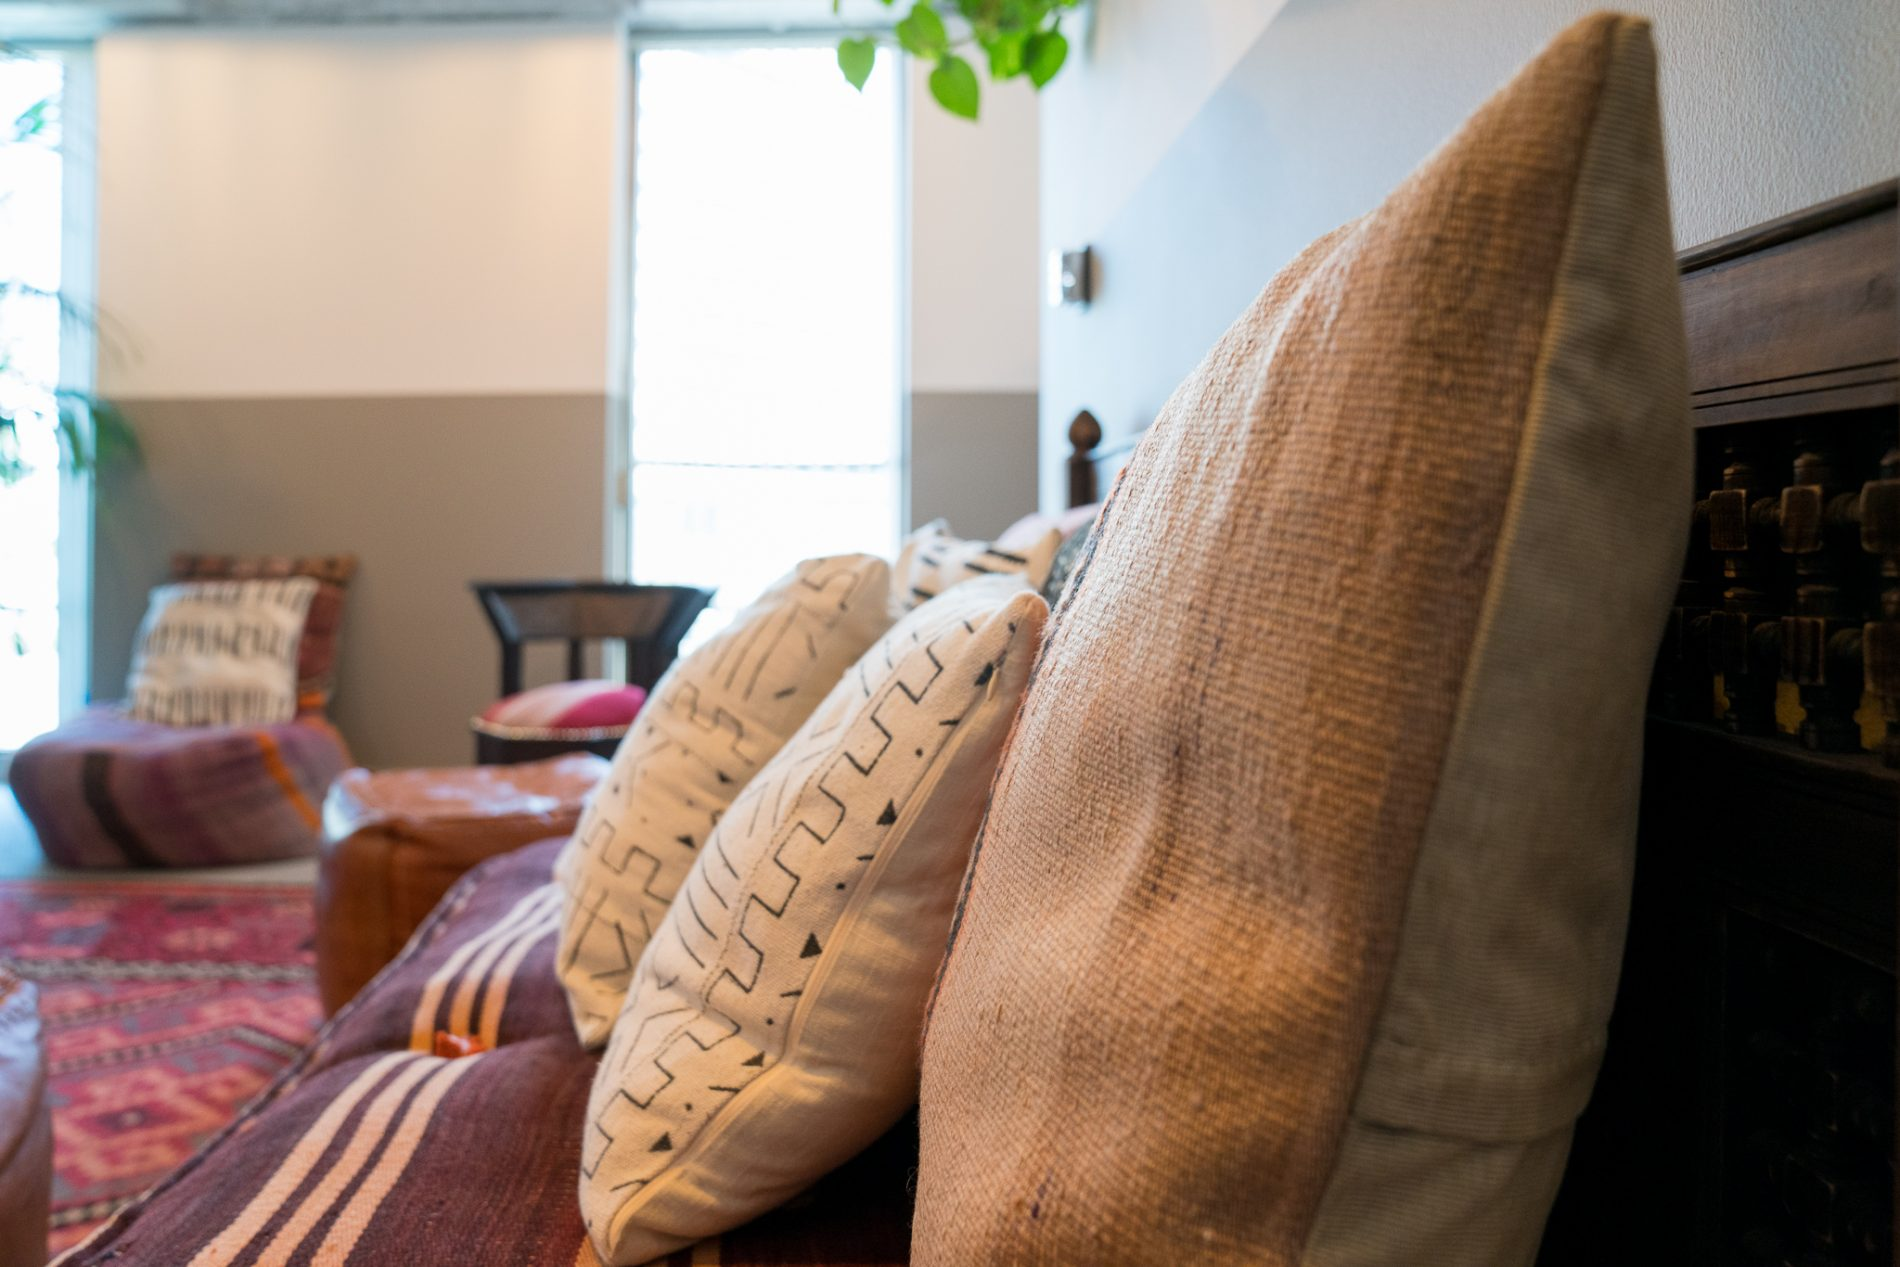 luxury retreat recovery center, pillows